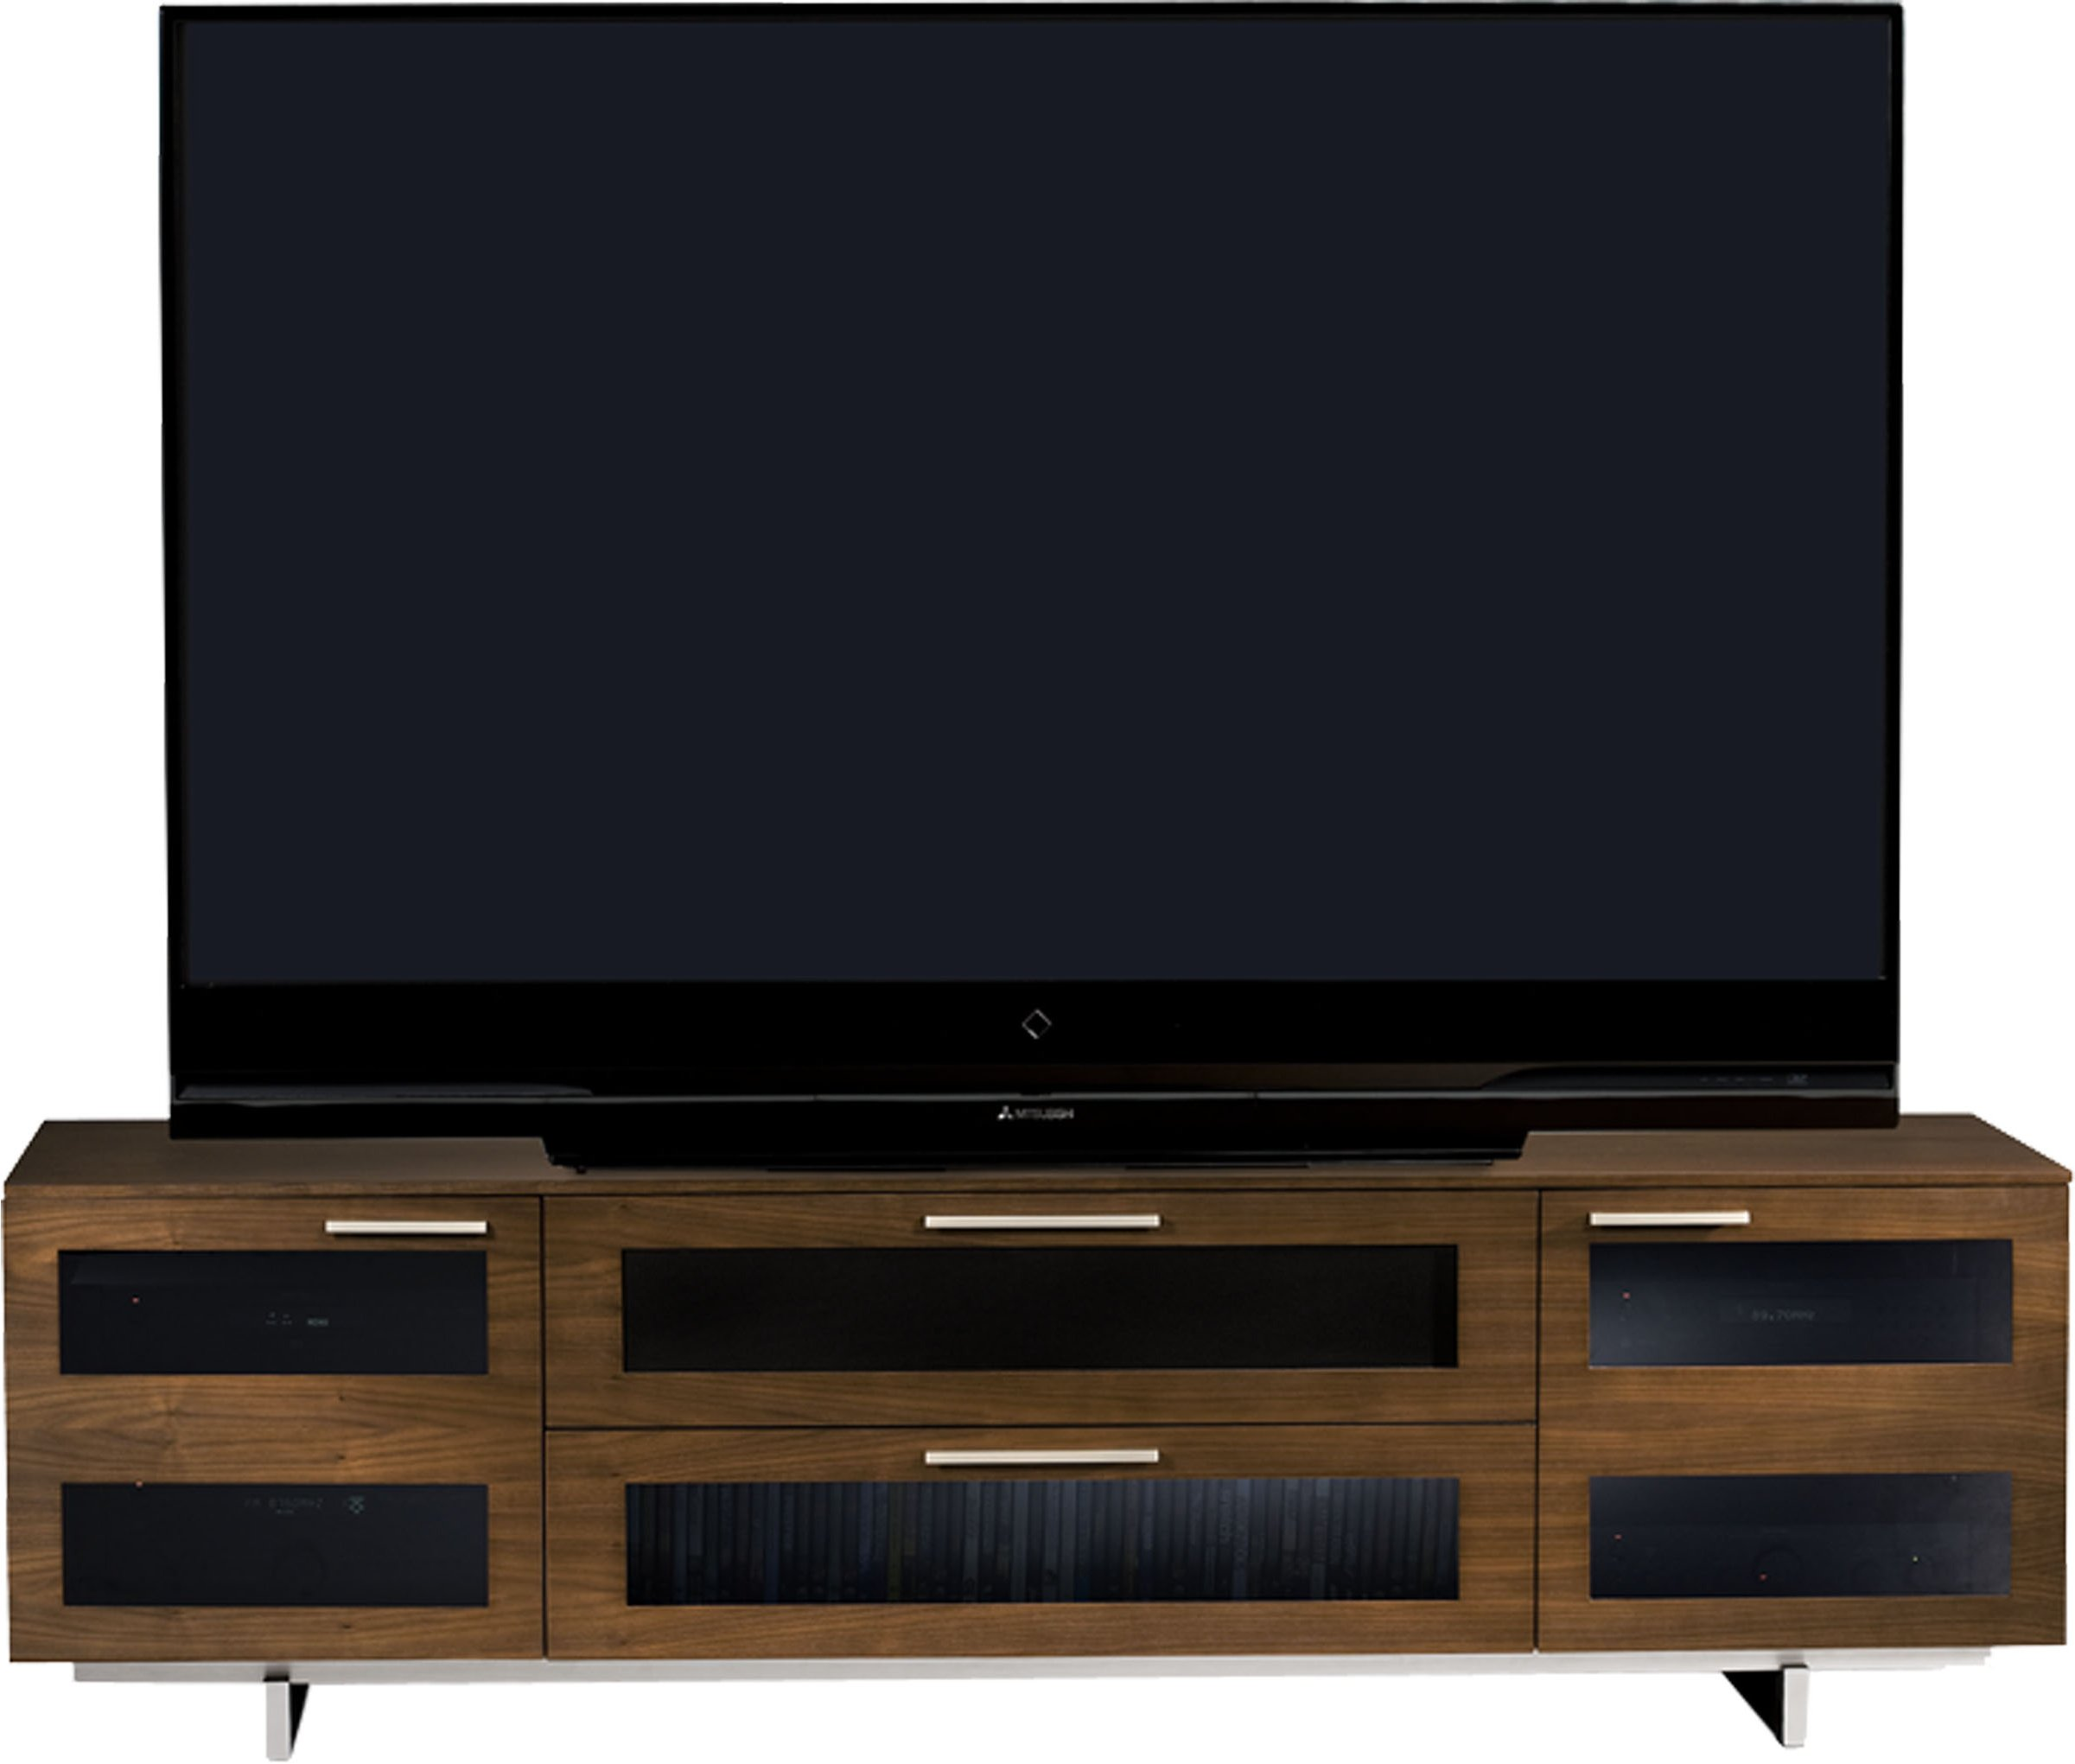 design tv designs now small graham theather television cupboard will stand movie living other home furniture as cabinet corridor enhance innovative on basic homey set reviews component your audio robert good stands chairs may at jr for and decoration theater up that bdi ikea clearance such room